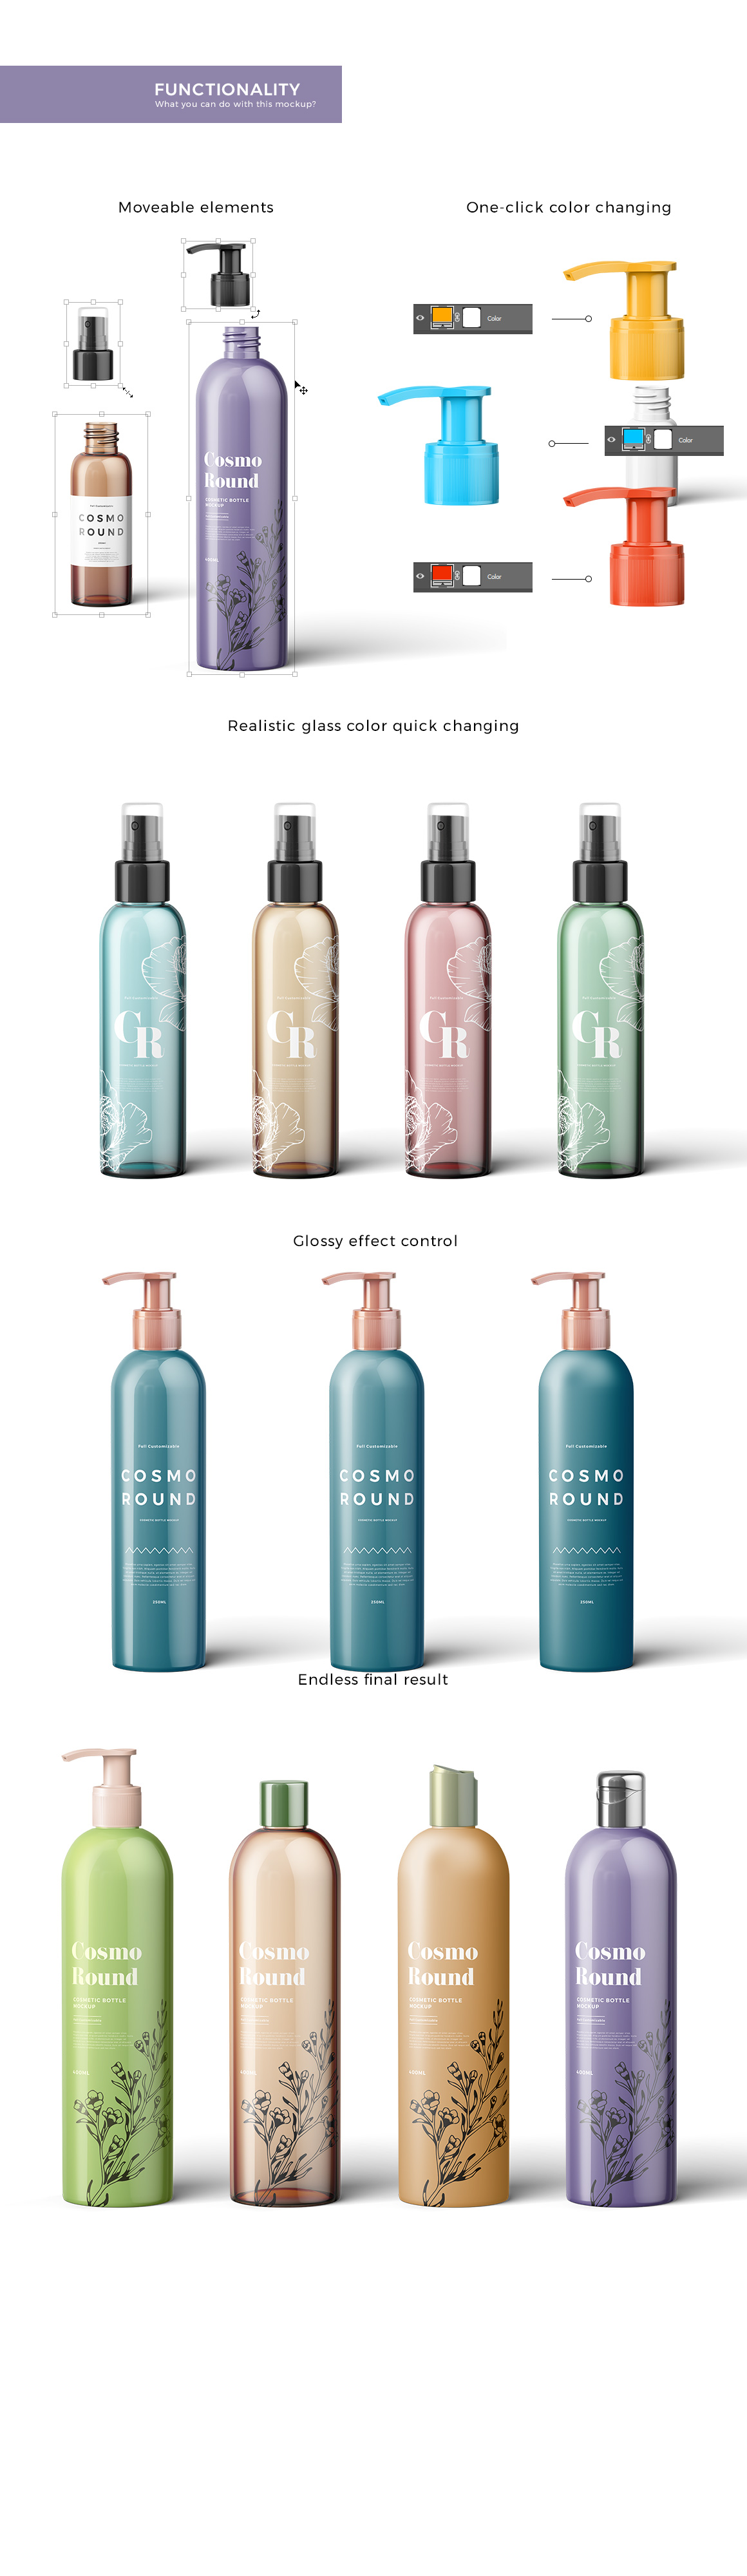 Cosmetic Bottles Mockup Vol.3 example image 4